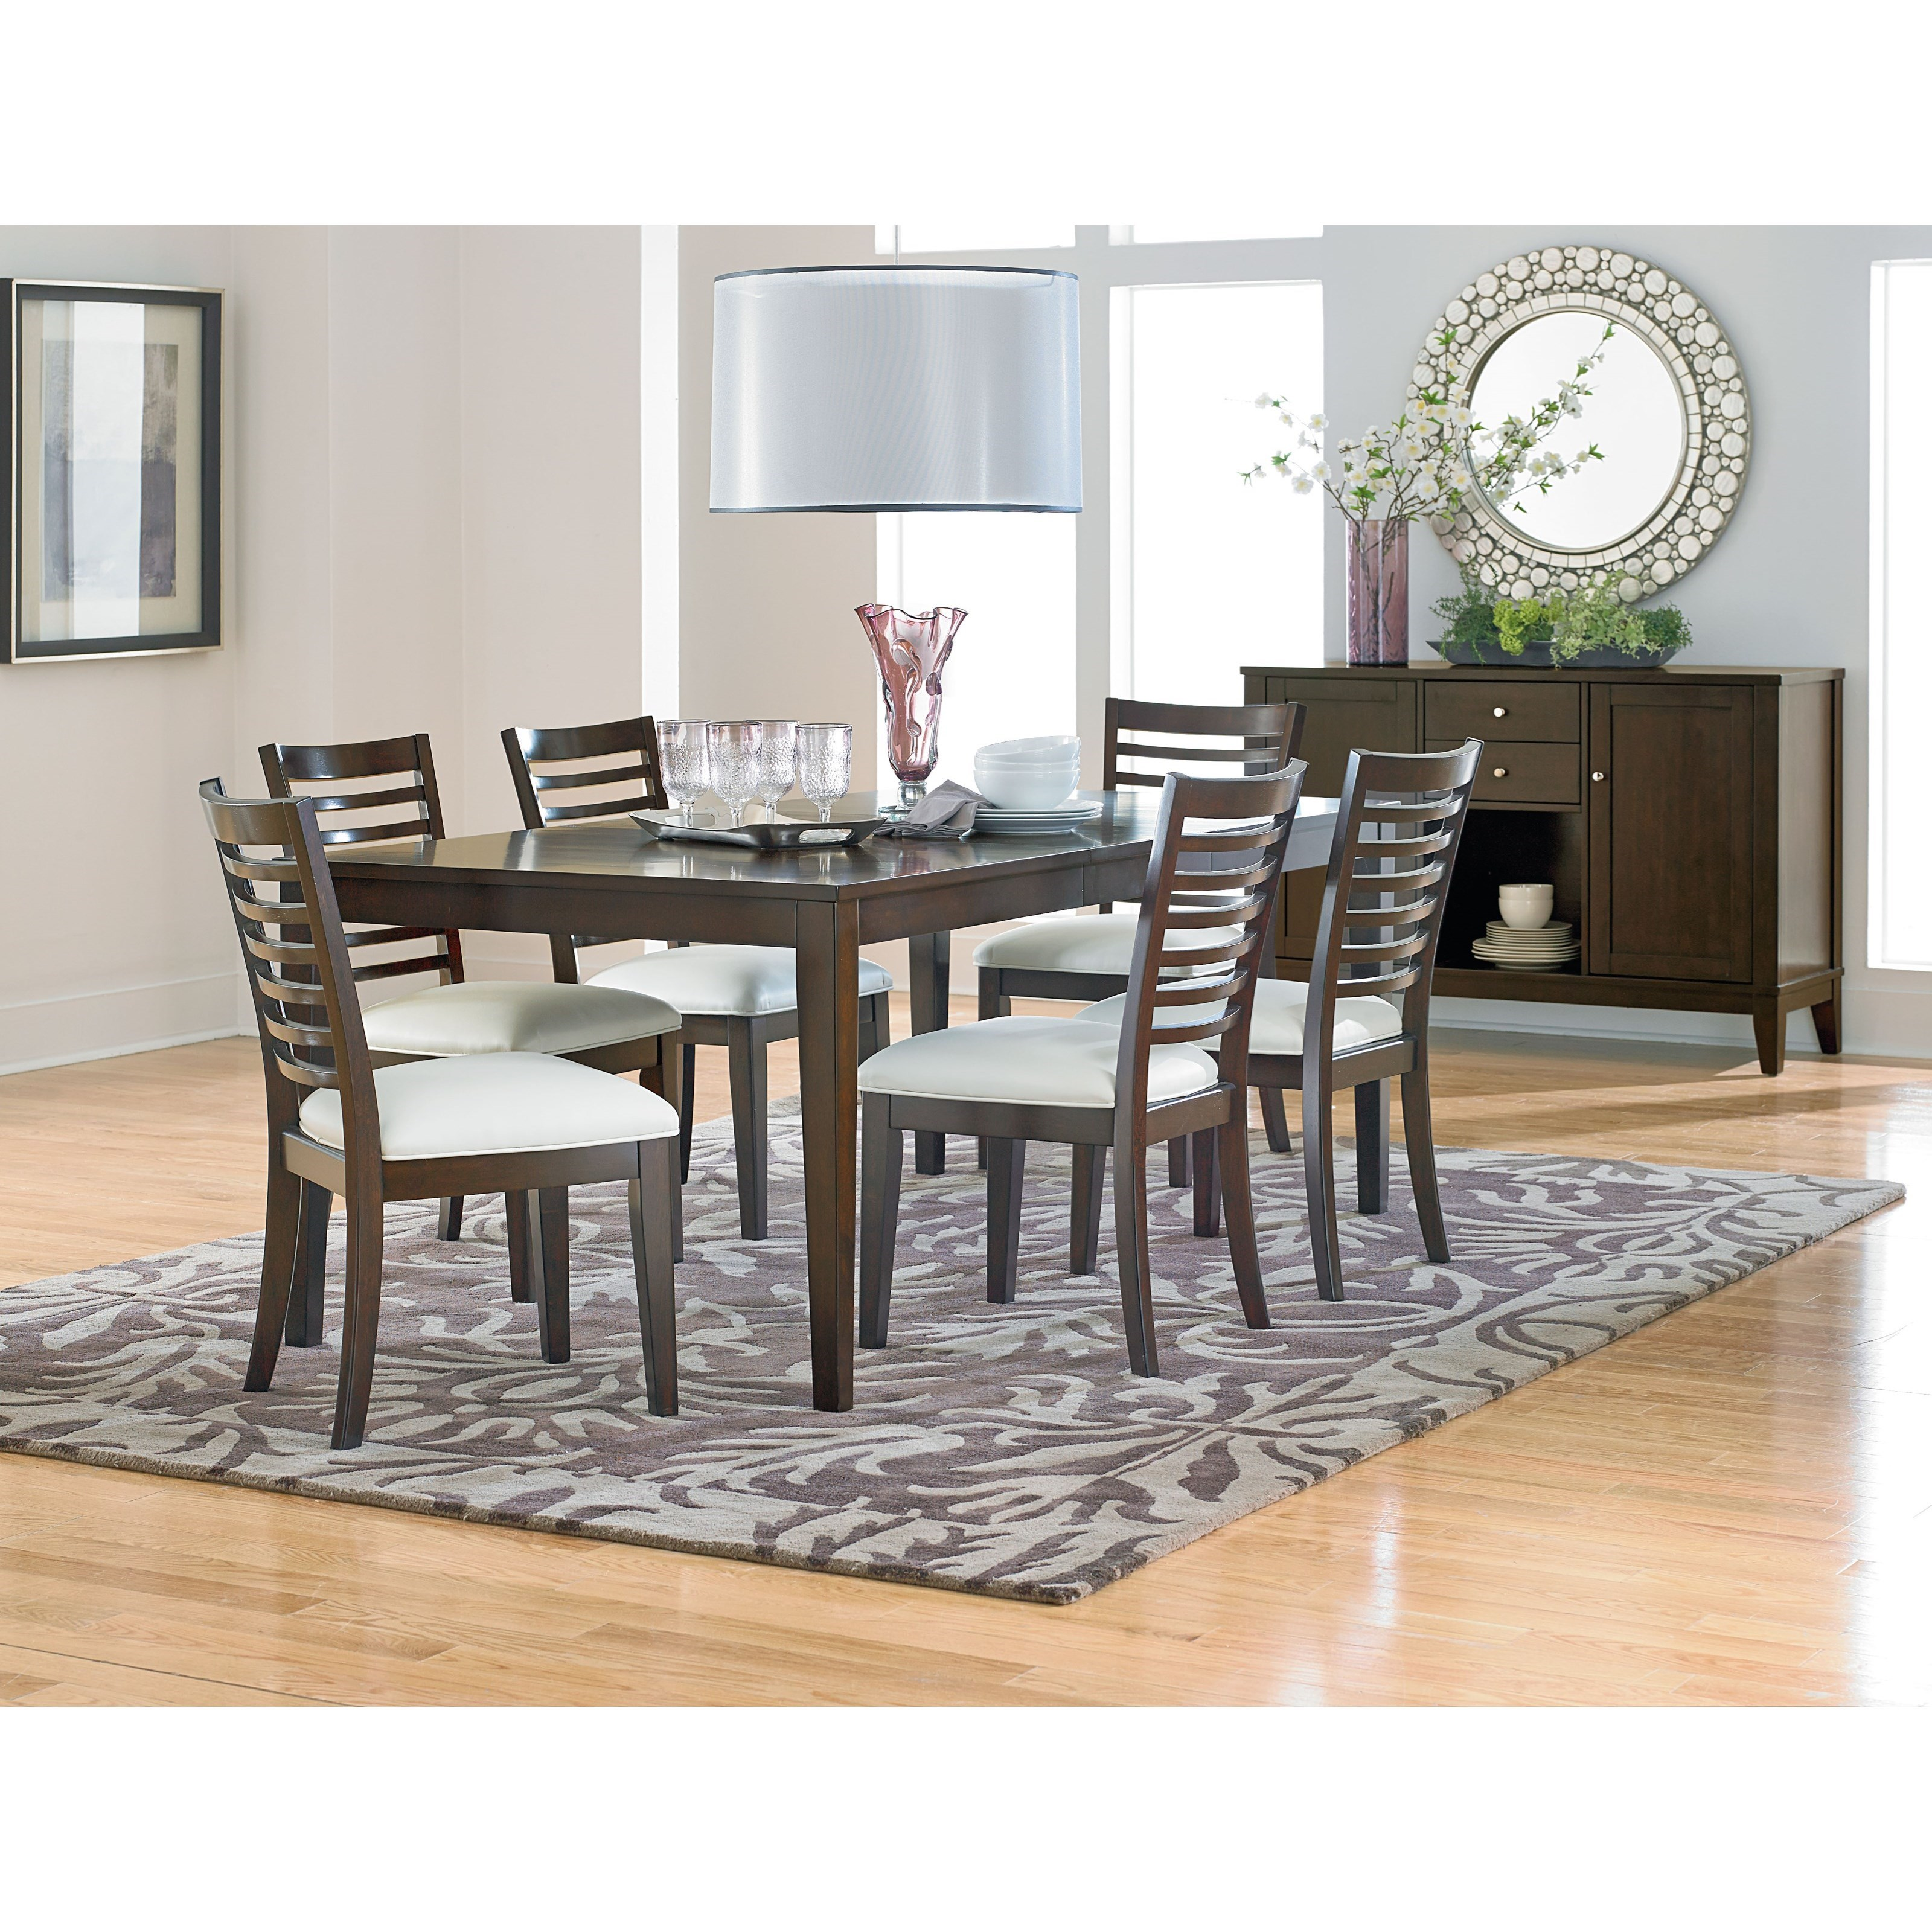 Standard furniture noveau casual dining room group for Casual dining room